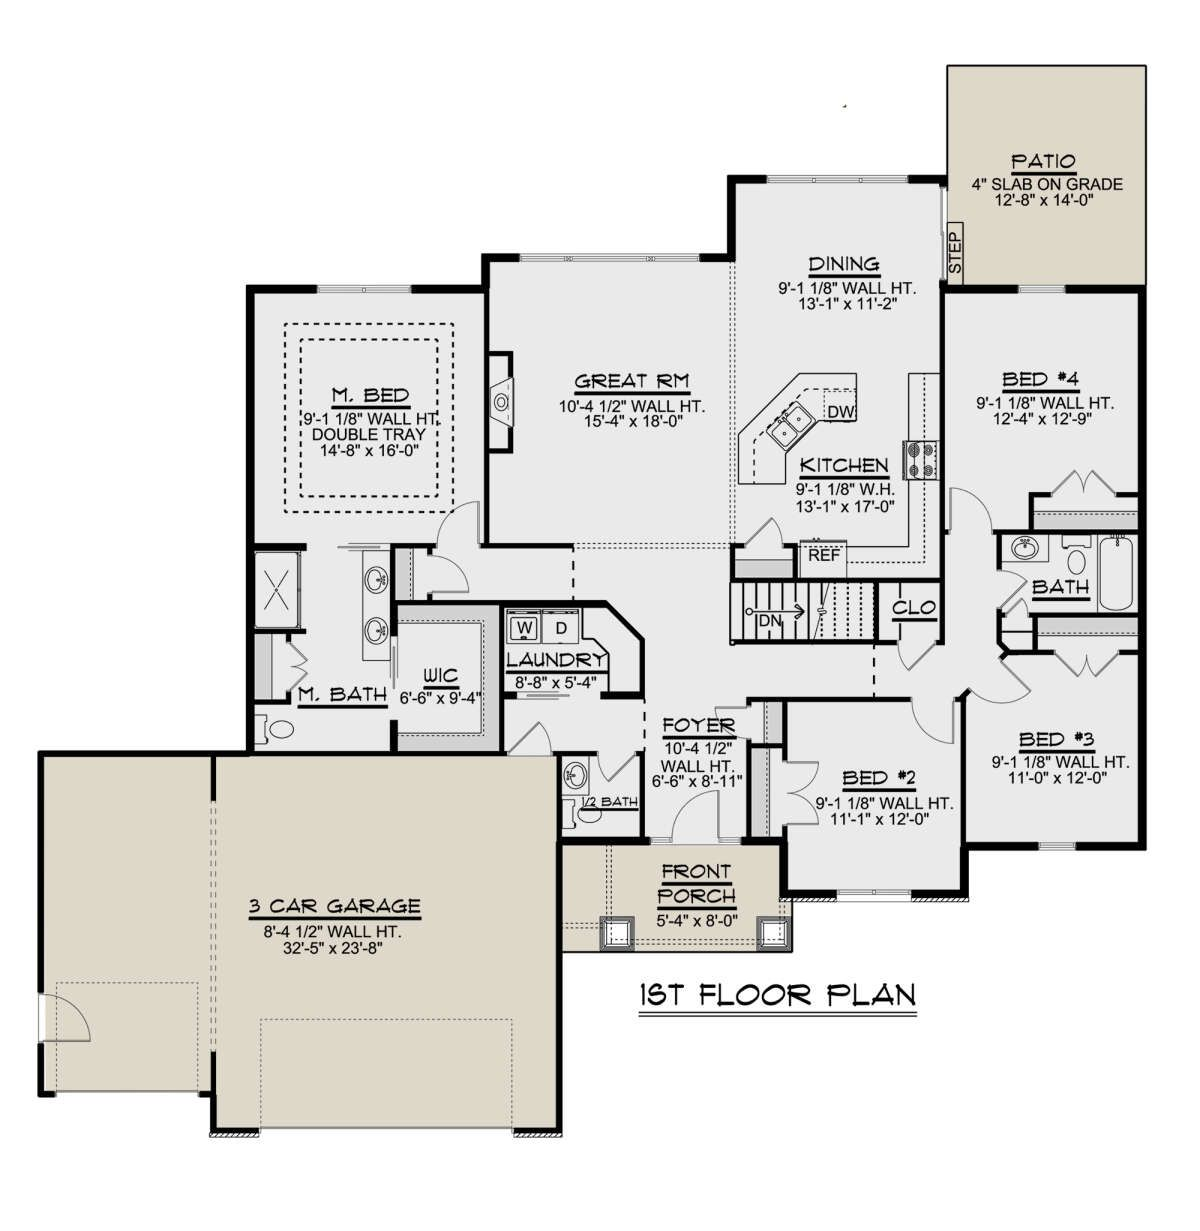 House Plan 5032 00026 2 106 Square Feet 4 Bedrooms 2 5 Bathrooms In 2020 House Plans House Floor Plans Floor Plan Drawing